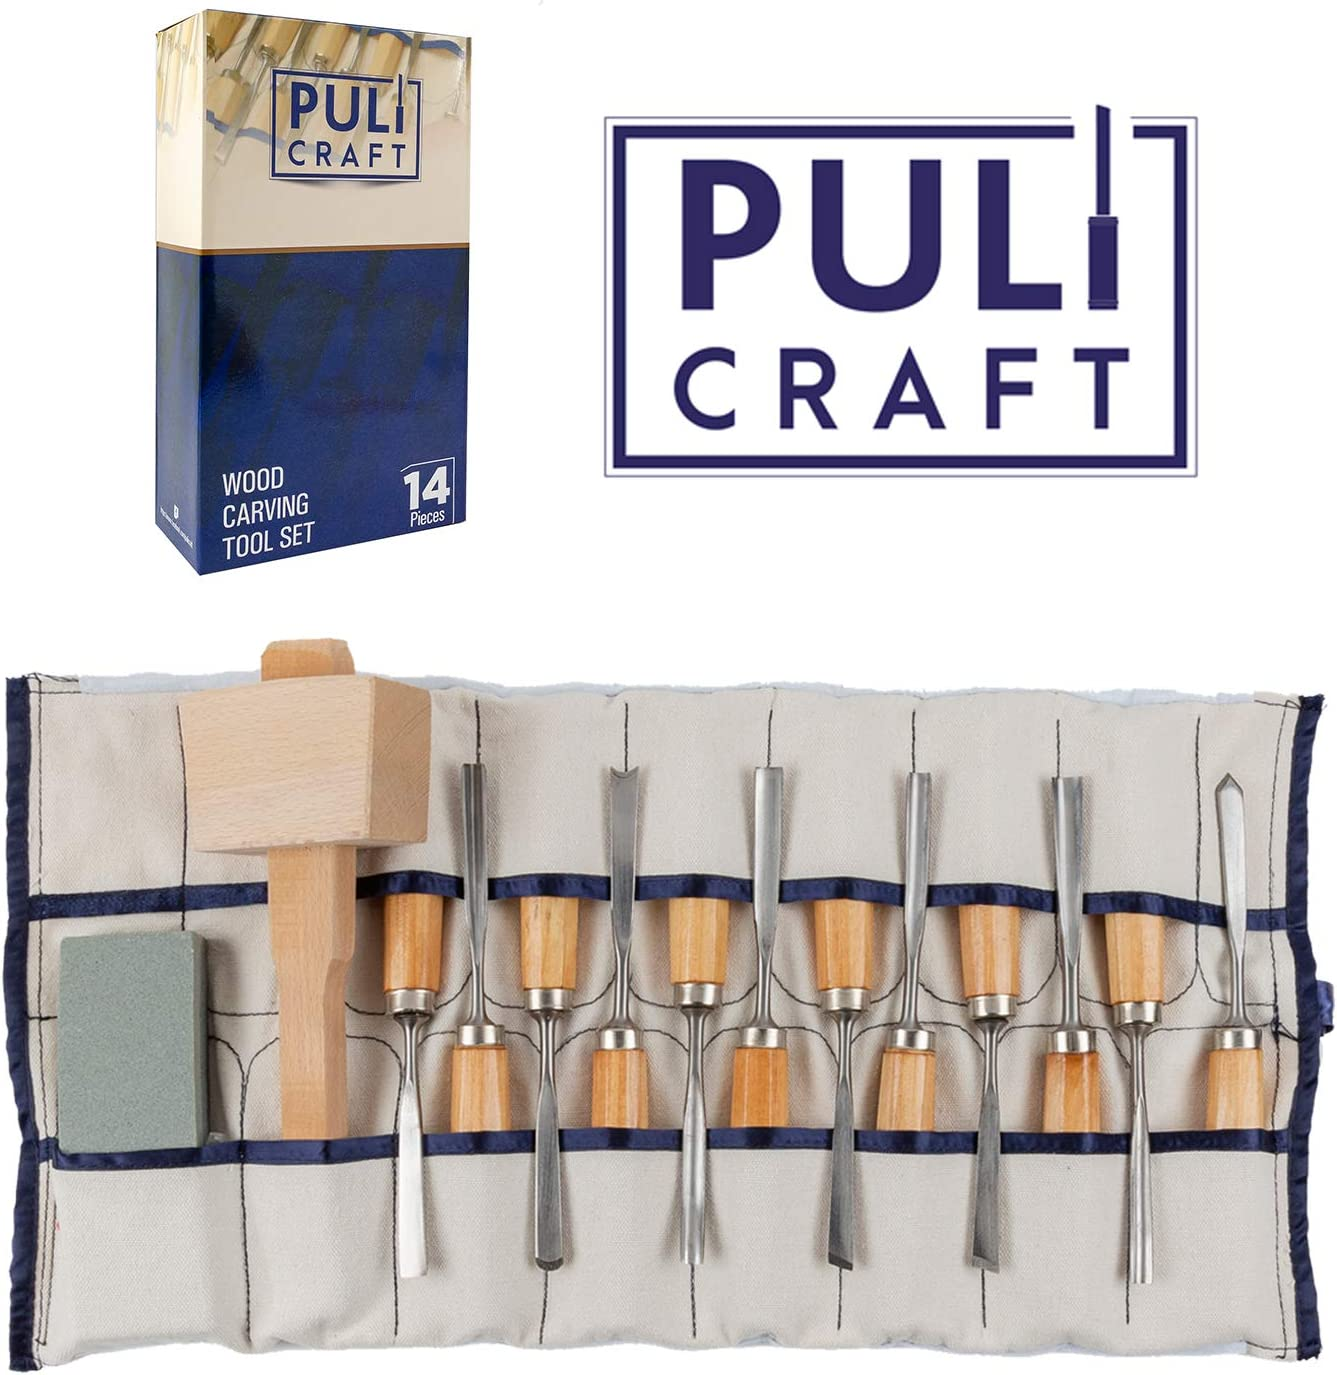 Amazon Com Puli Craft Wood Carving Knife Tools Set Gouges Chisels Sharpening Stone Mallet Beginner Woodworking Kit With Canvas Case Precision Cutting Shaping For Personal Use Whittling Arts Crafts